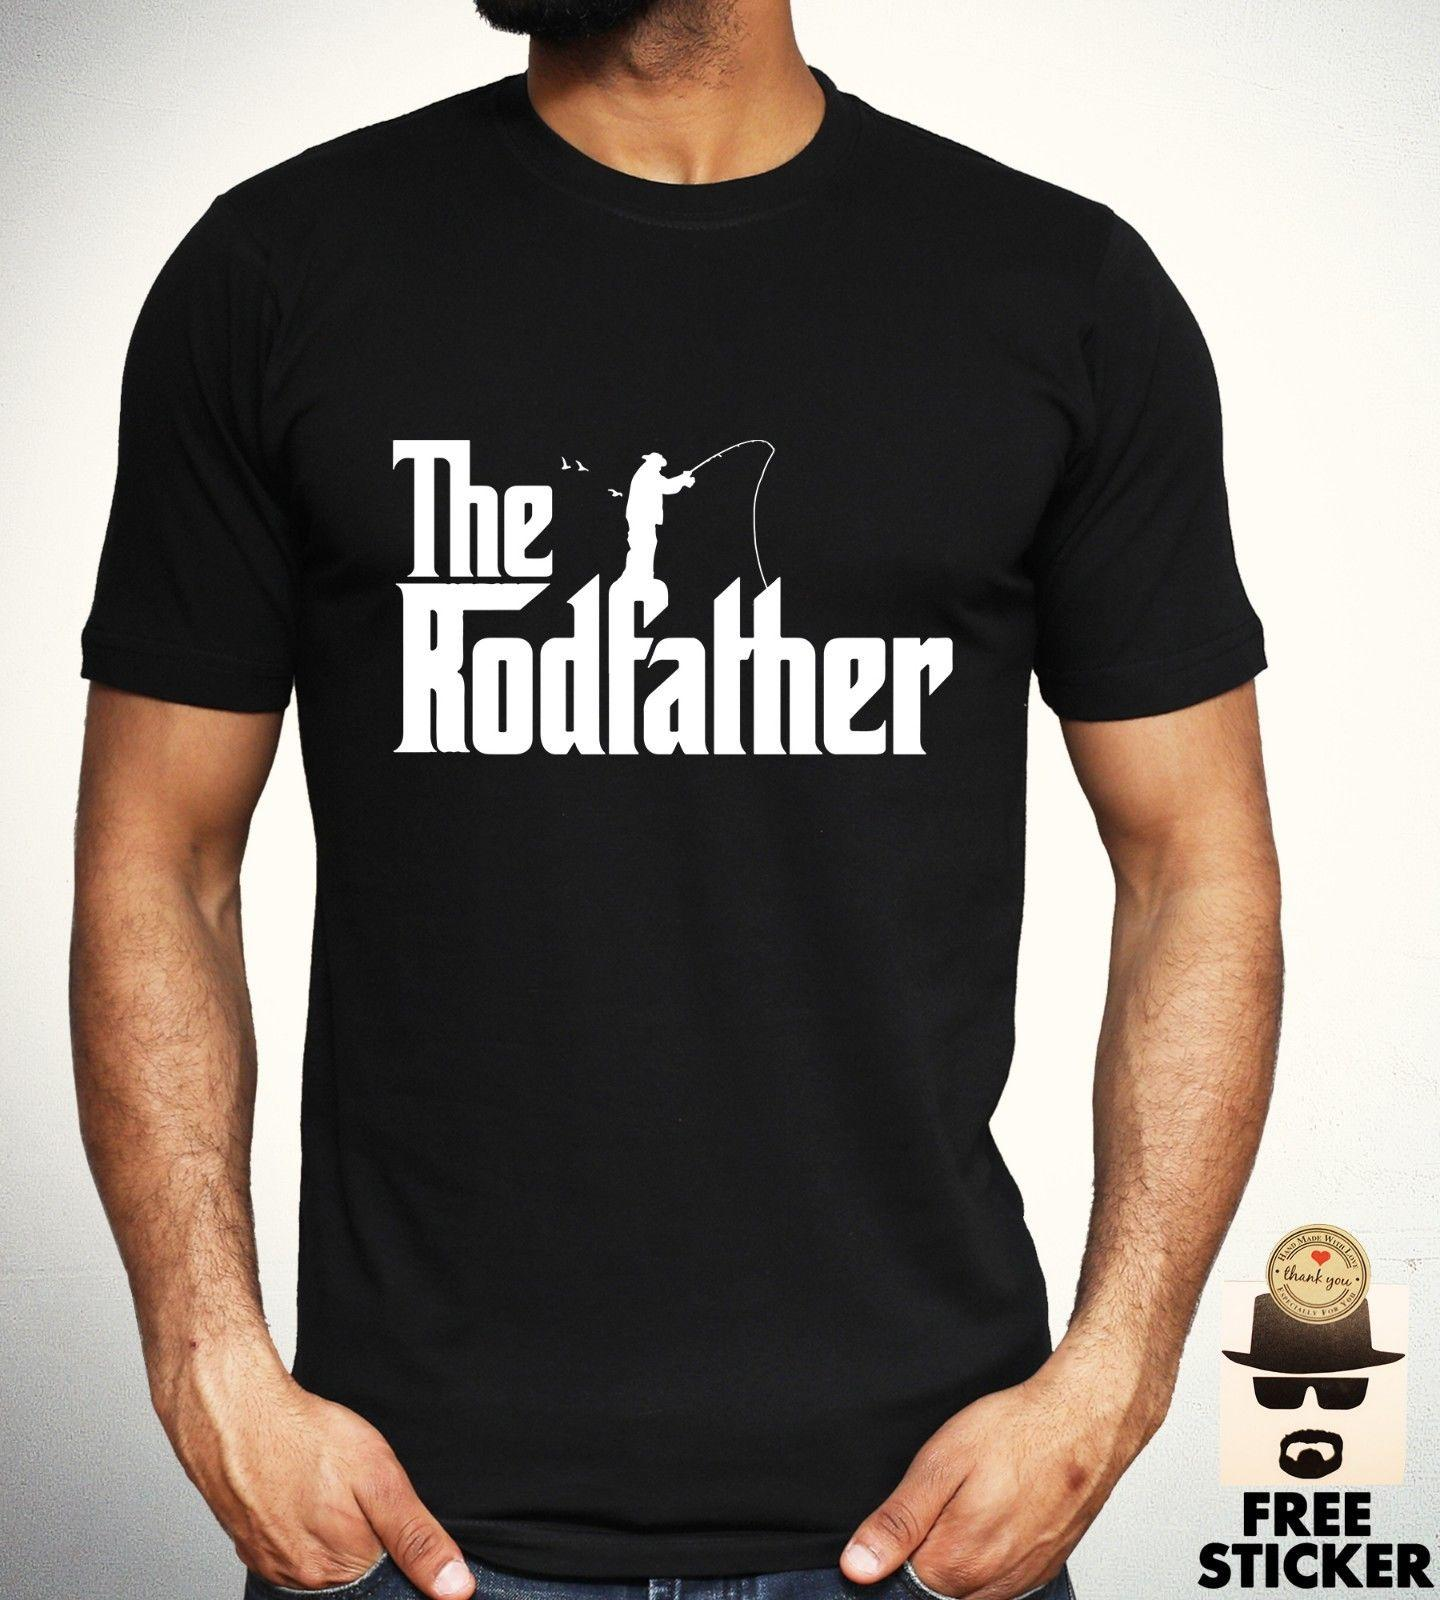 2e90a9518 The Rodfather T Shirt Funny Graphic Fishing Fisherman Gift Present Dad Mens  Top 100% Cotton Short Sleeve Top Tee Basic Funny Clever T Shirts Best Sites  For ...